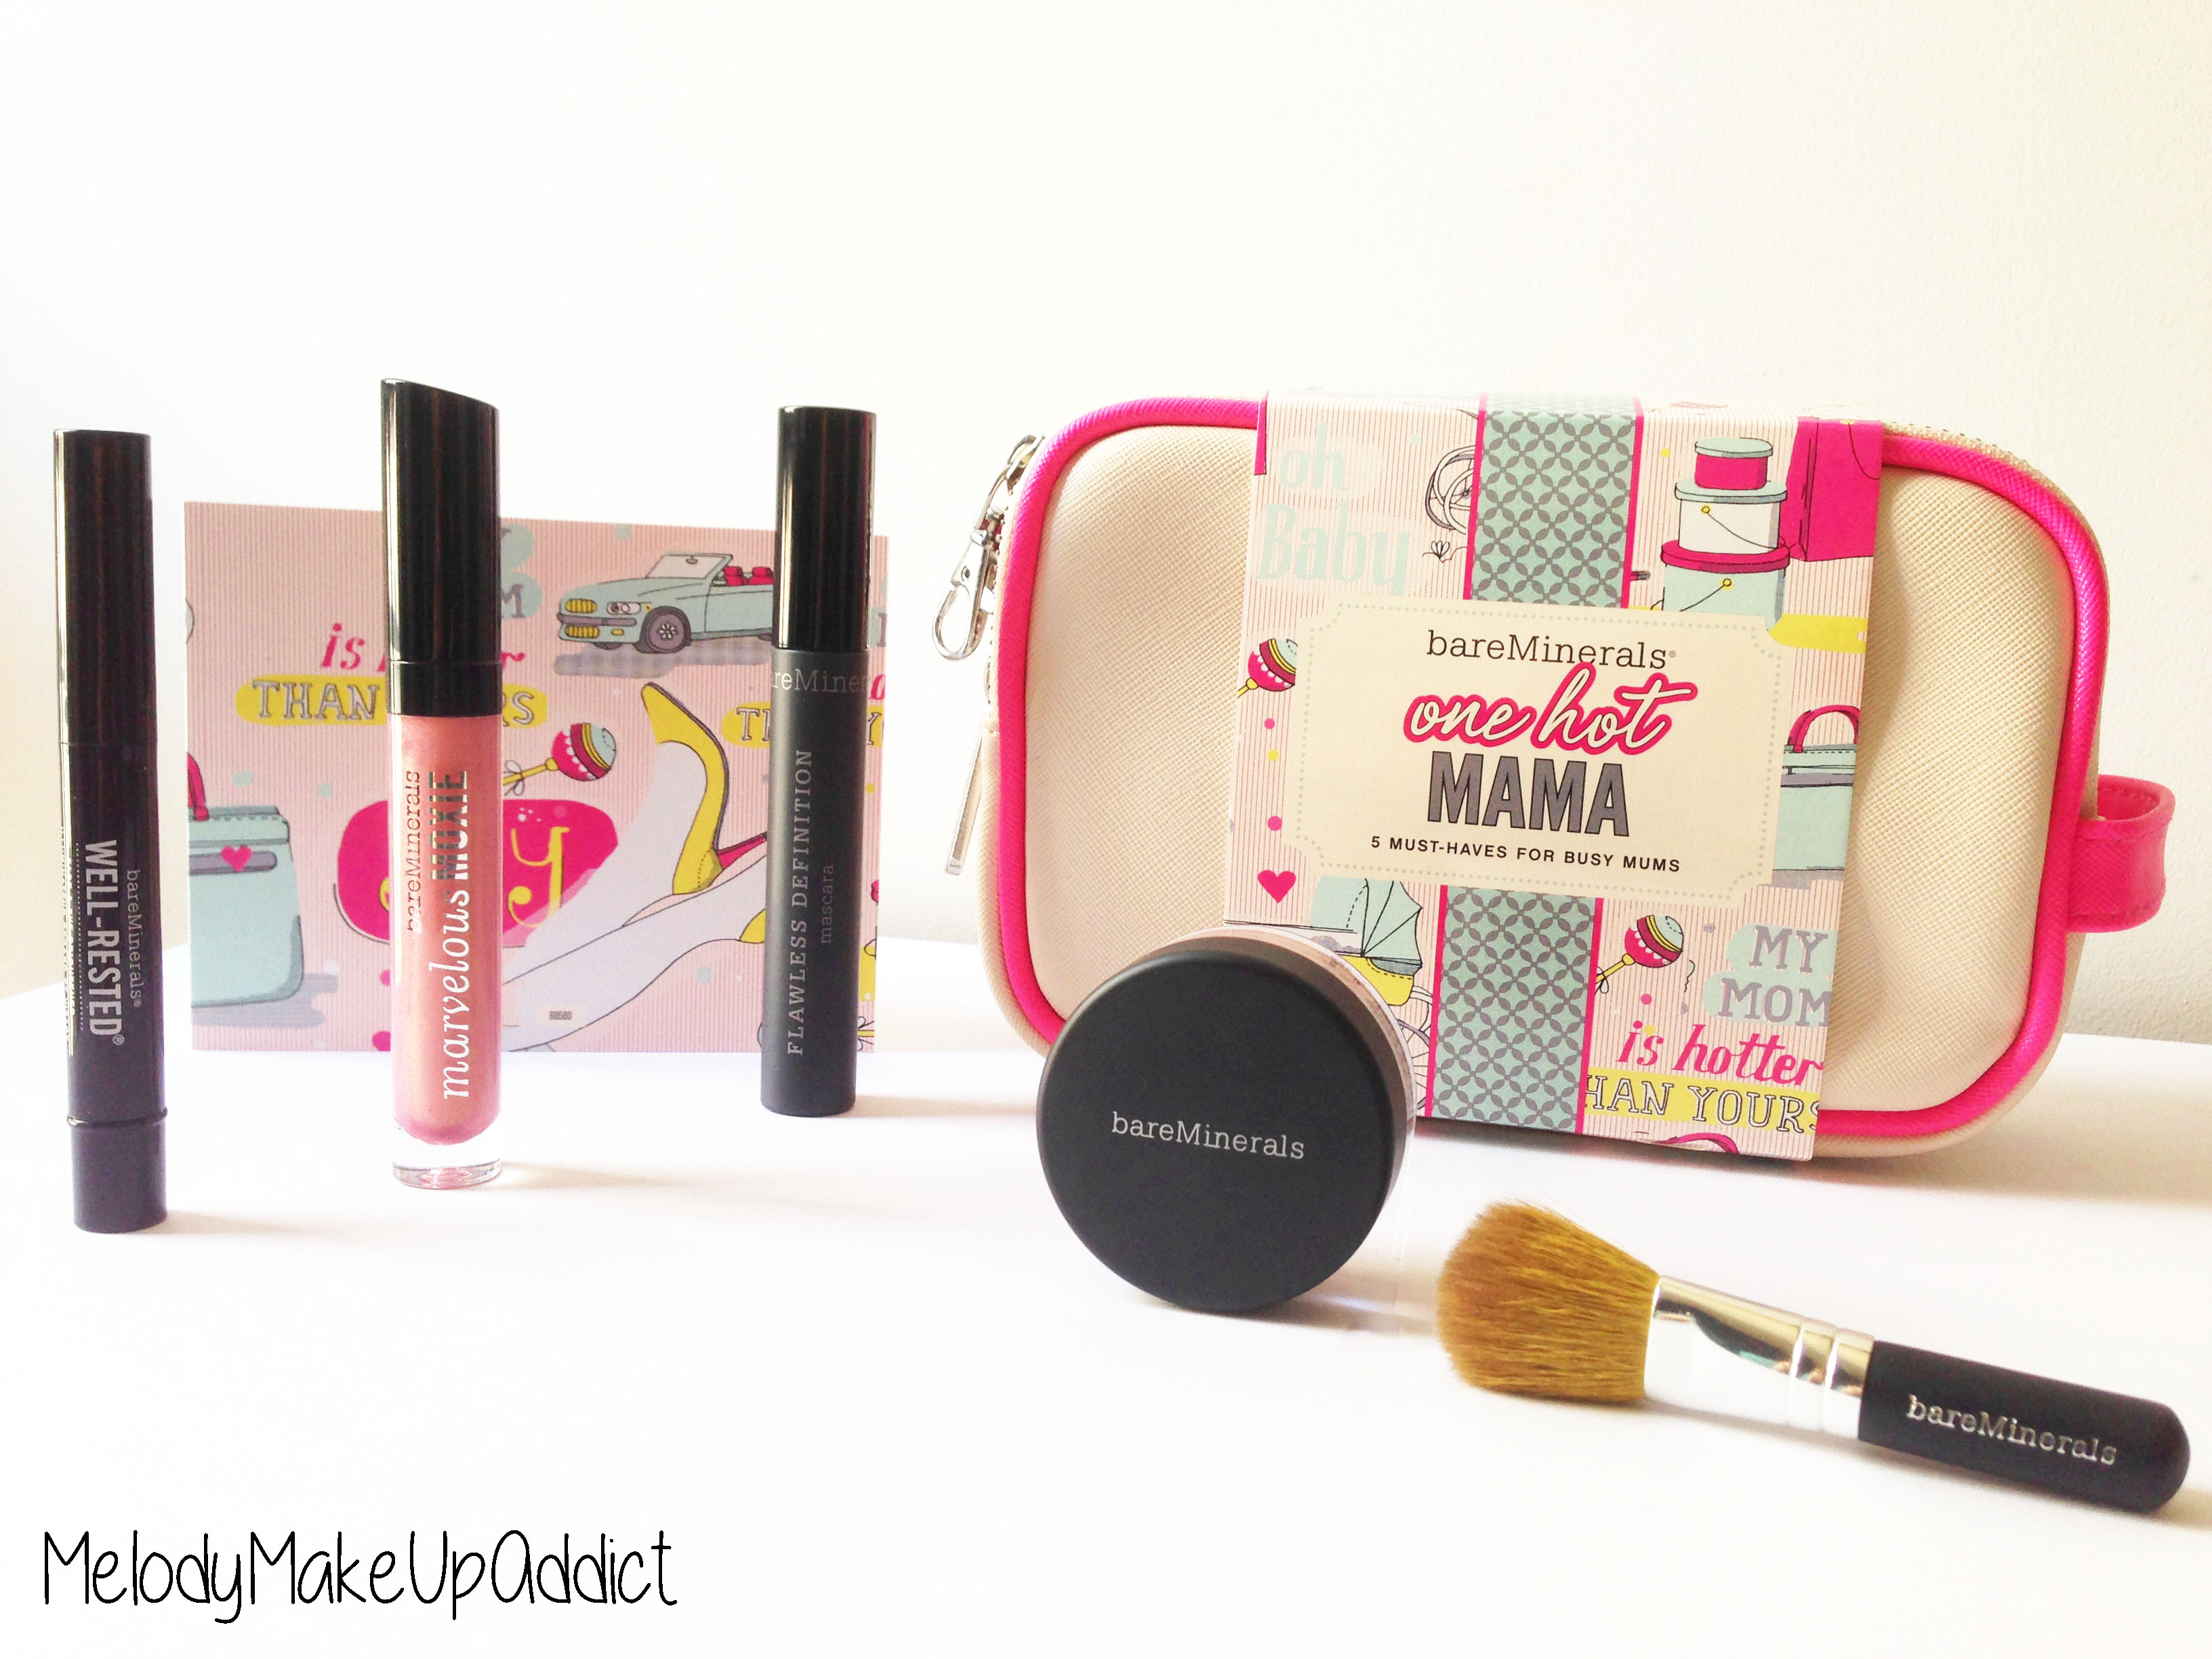 Le Kit One Hot Mama De Bareminerals Melodymakeupaddict